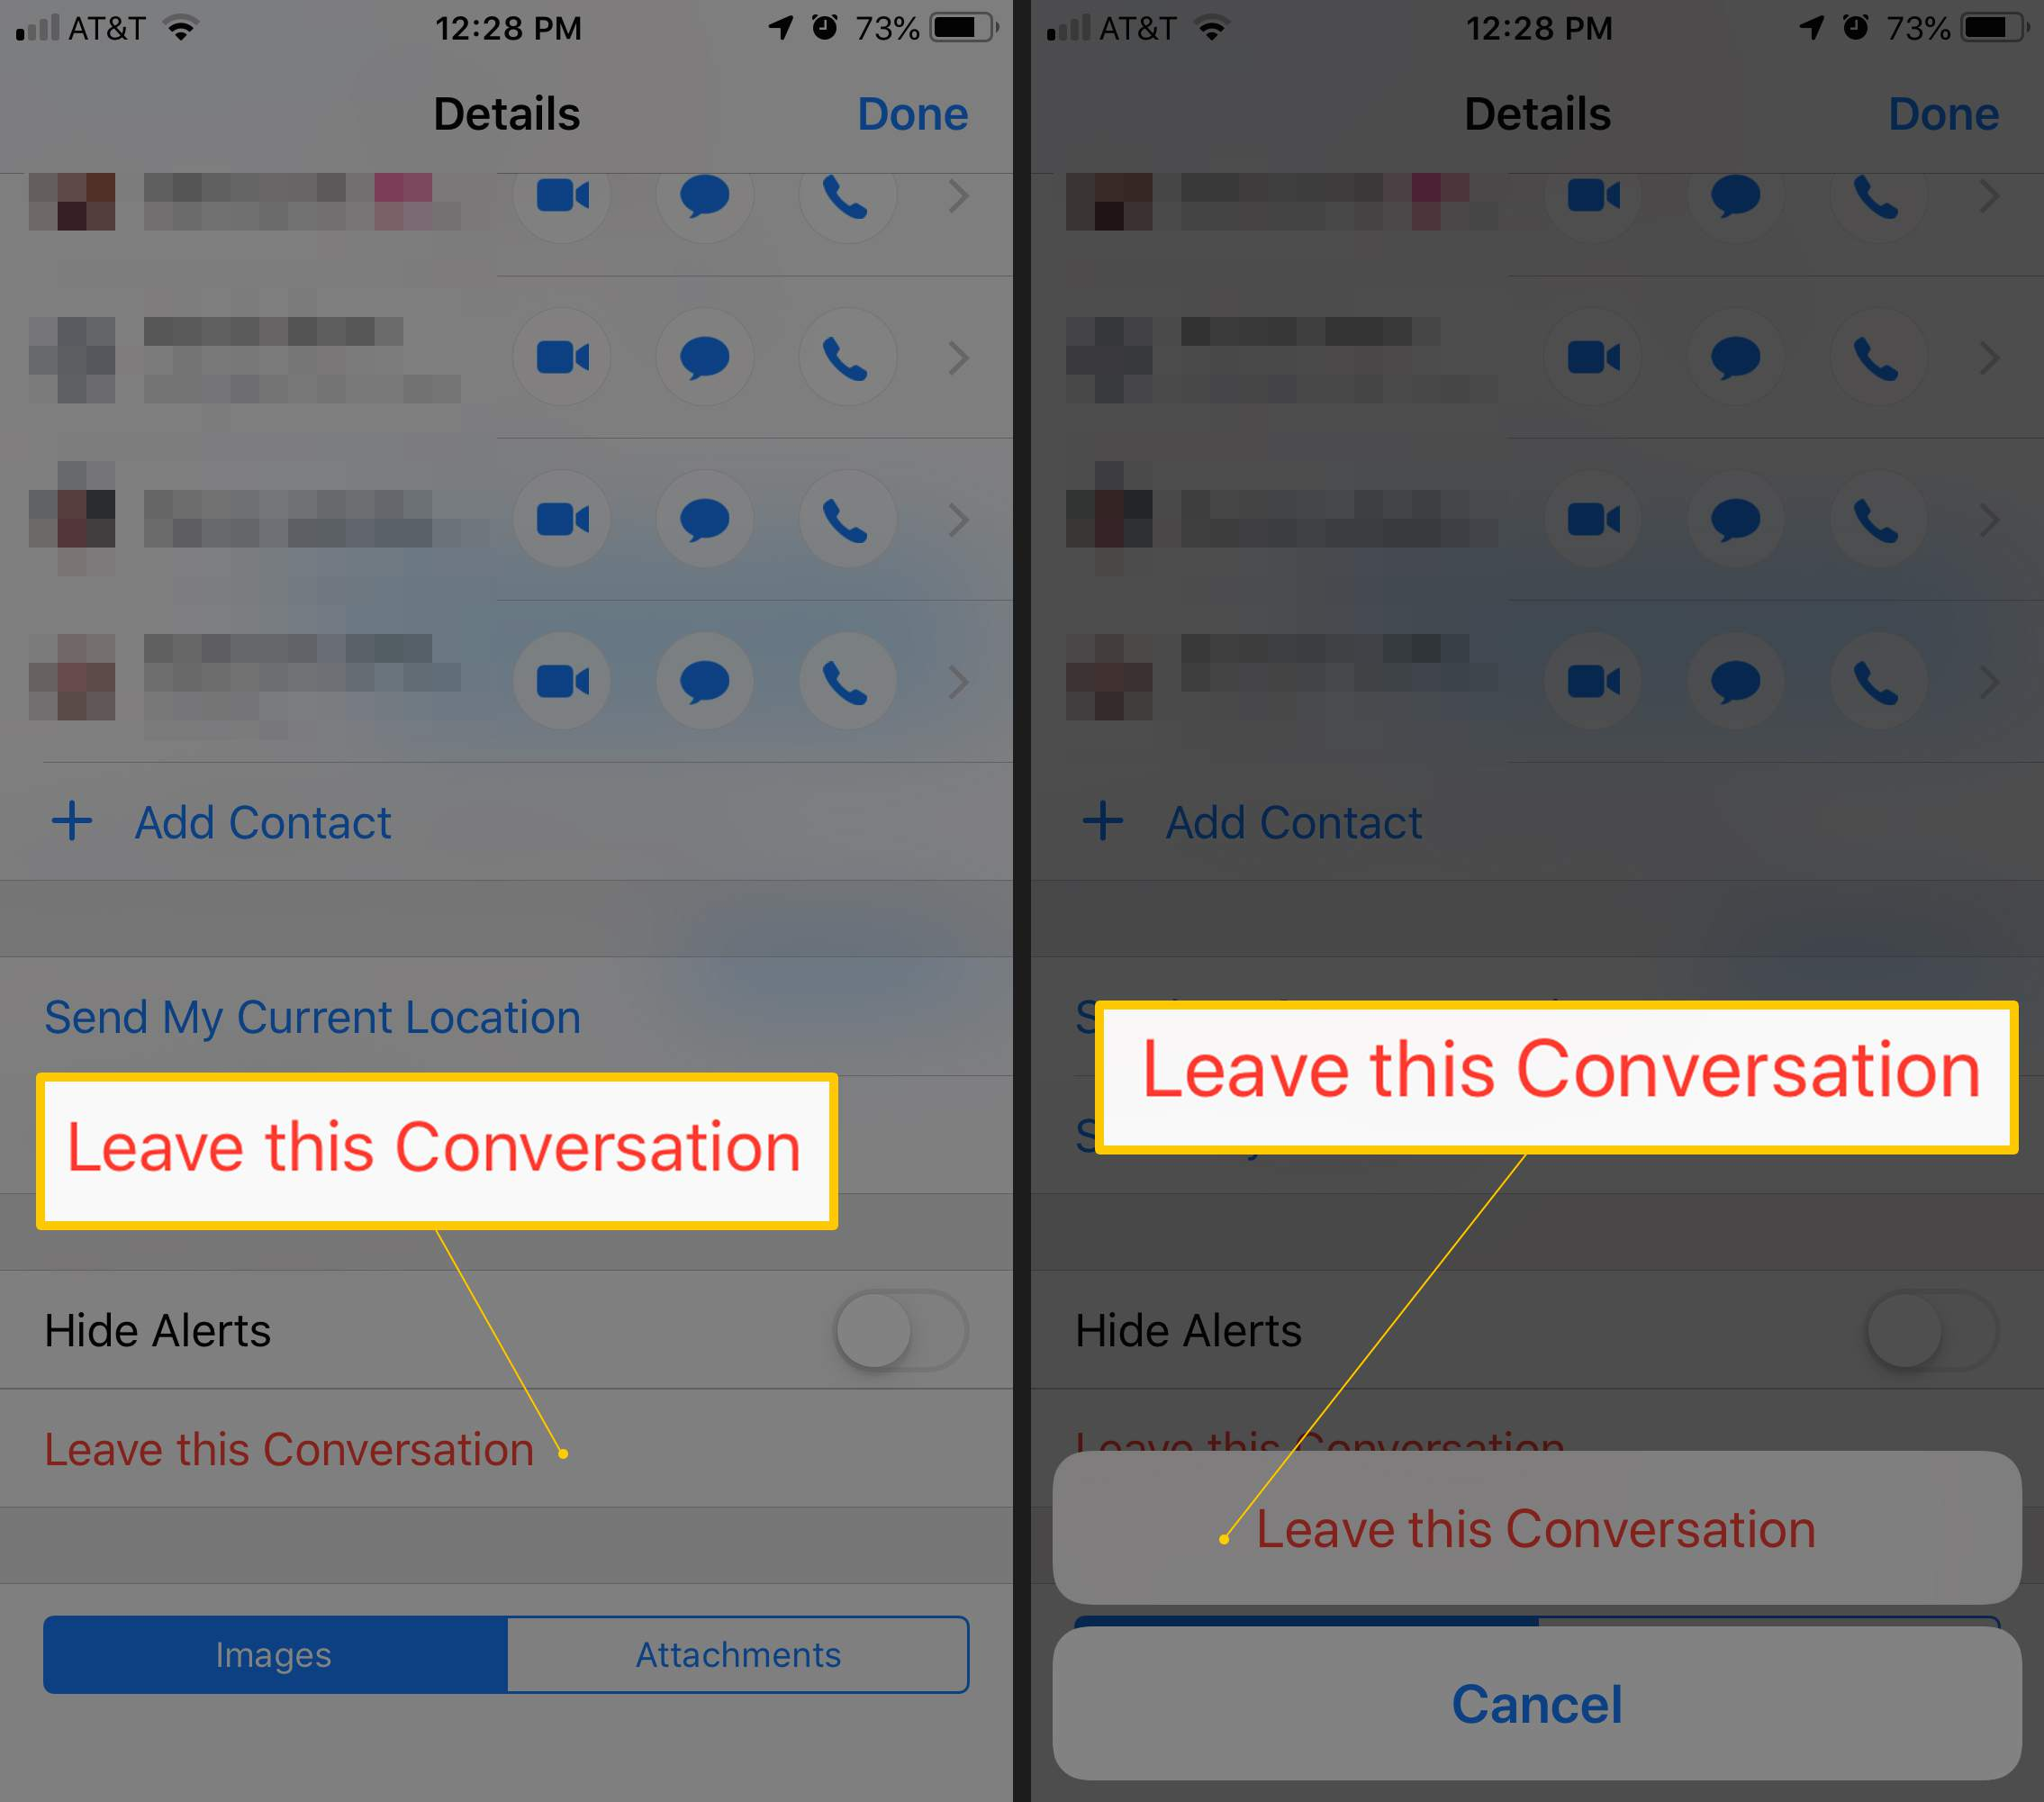 Two iOS screens showing Leave this Conversation options and the confirmation button